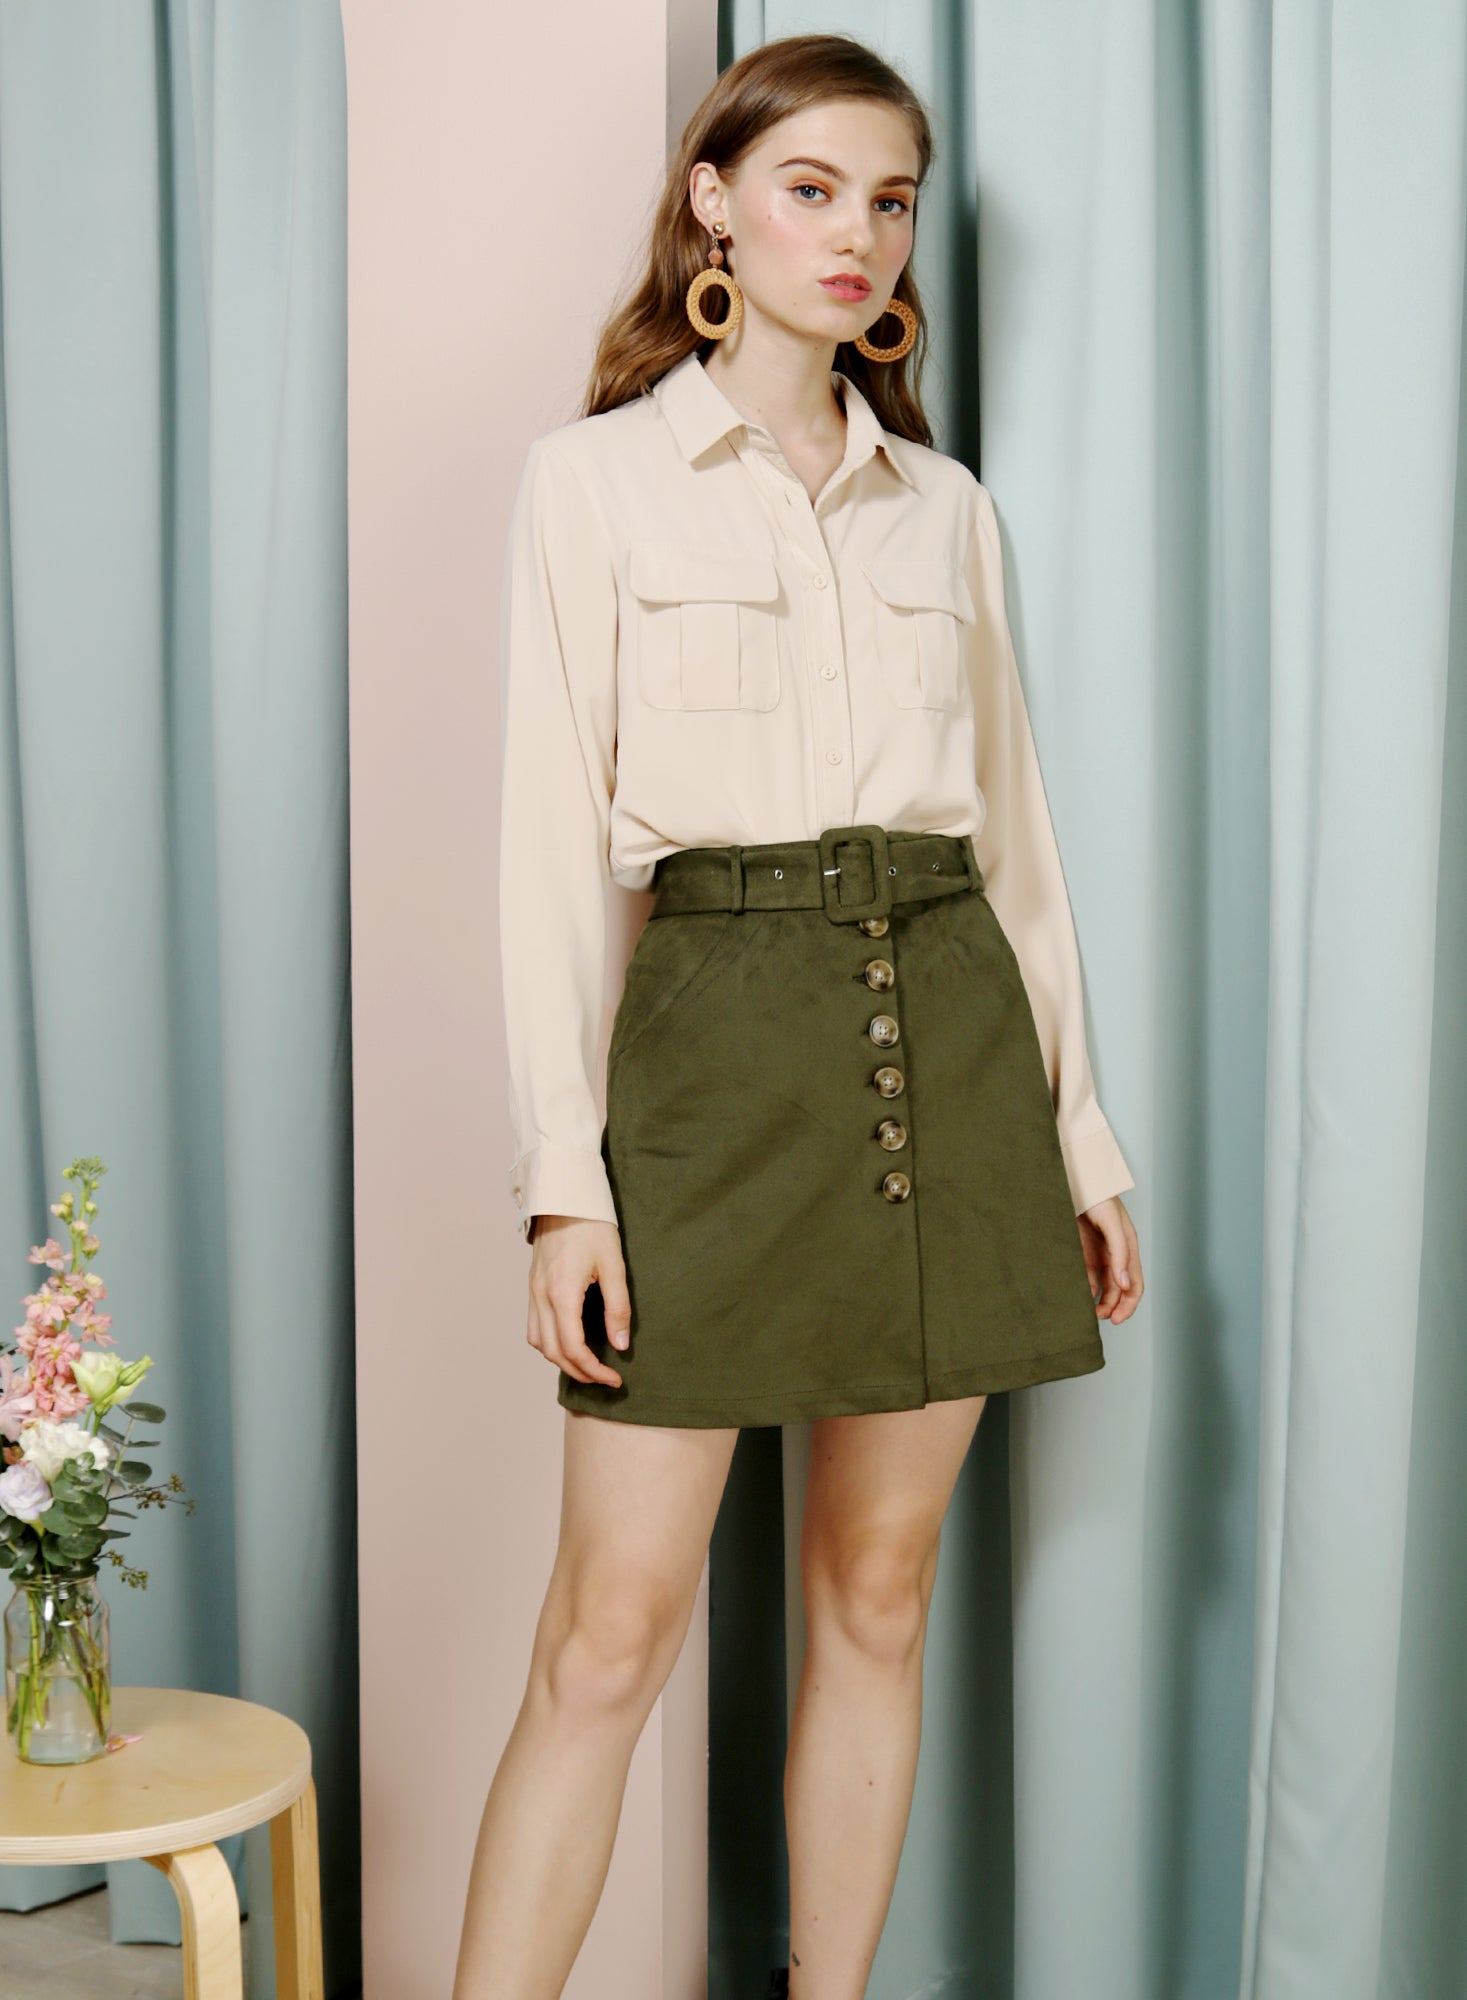 WAFT Double Pocket Shirt (Sand) at $ 36.00 only sold at And Well Dressed Online Fashion Store Singapore